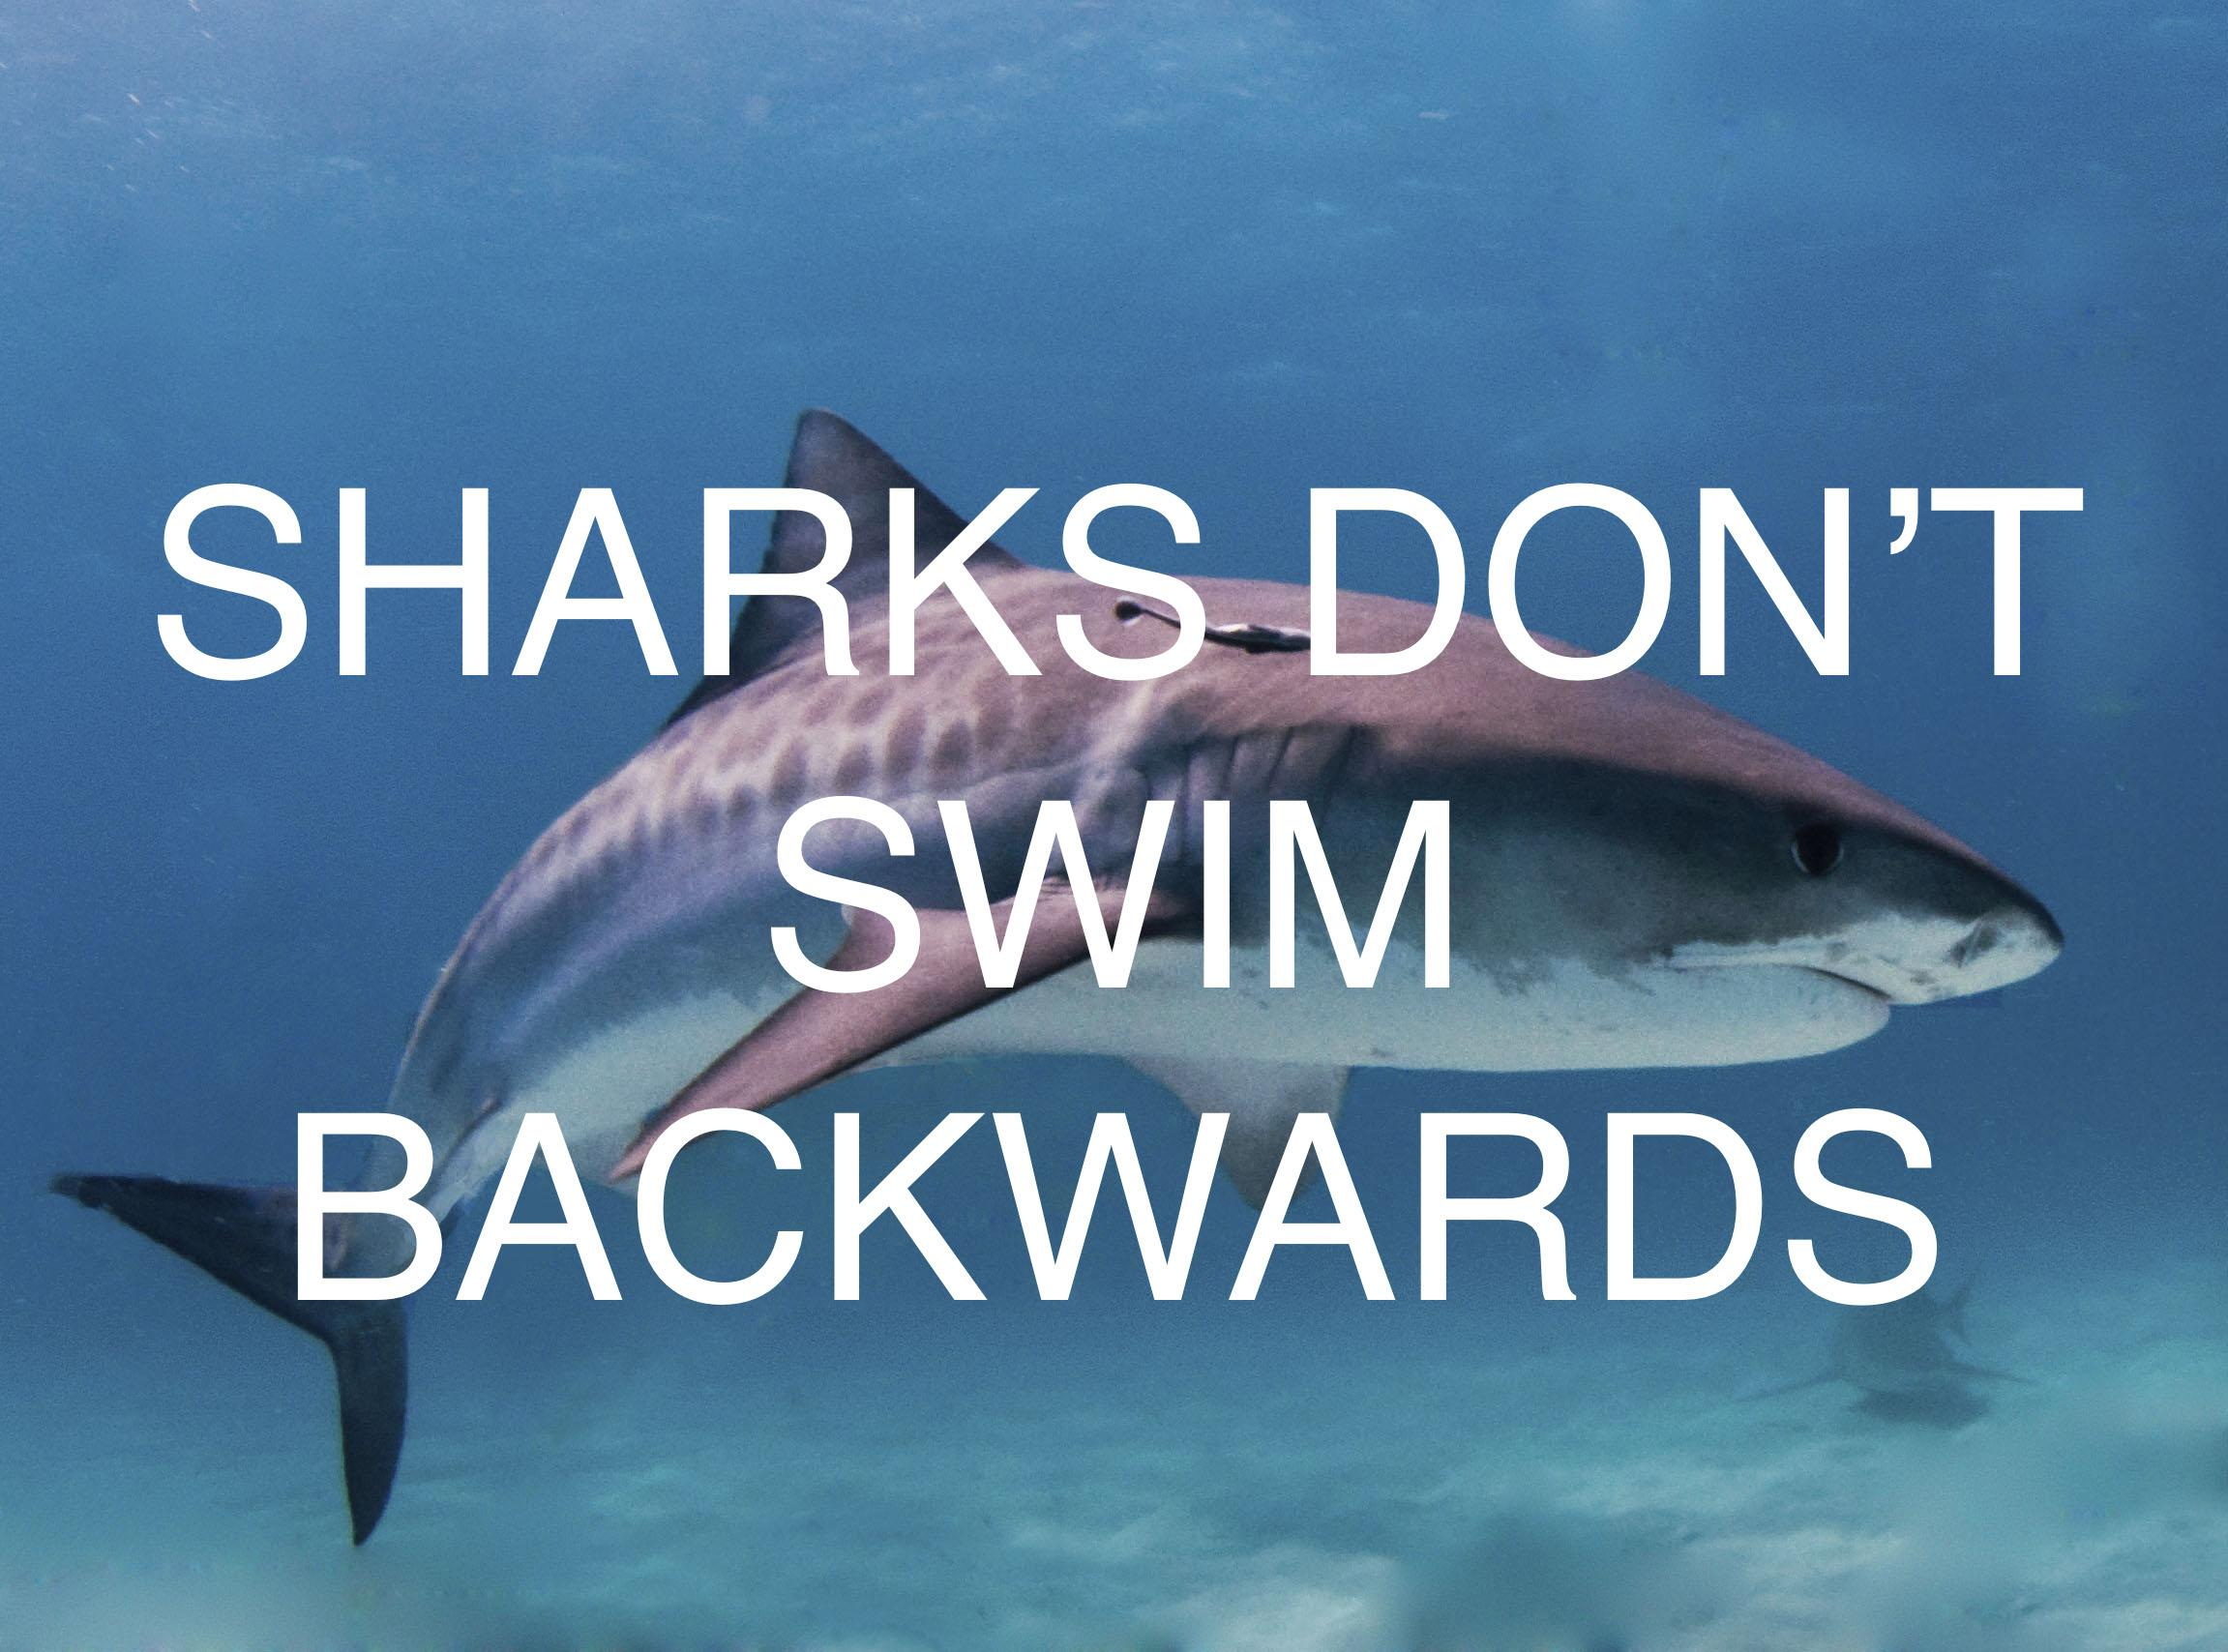 Sharks don't swim backwards